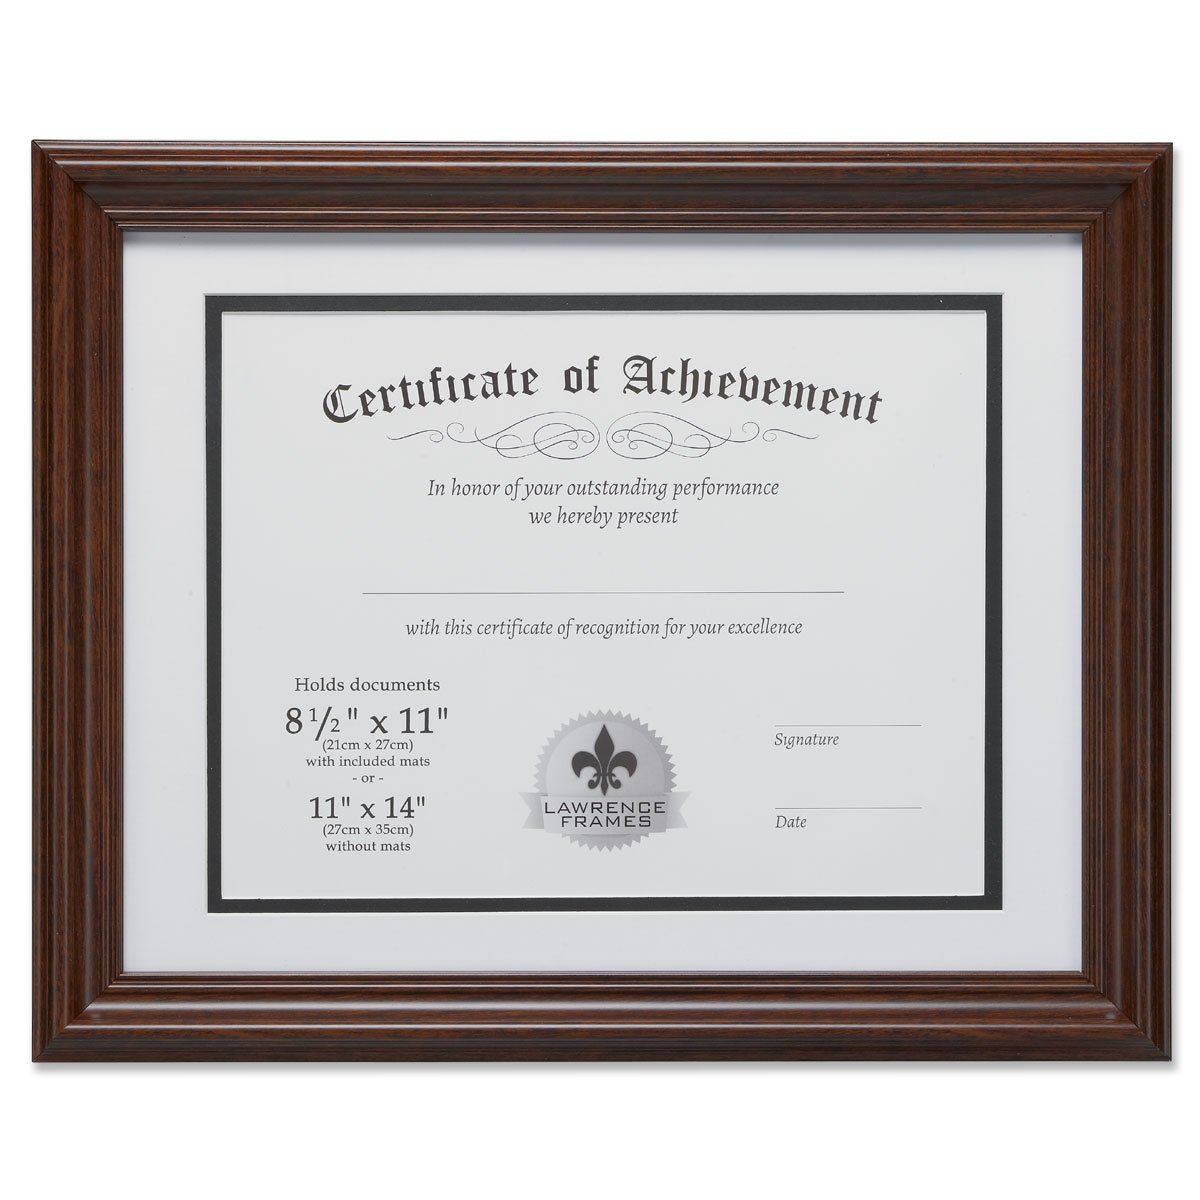 Lawrence Frames Dual Use 11 by 14-Inch Certificate Picture Frame with Double Bevel Cut Matting for 8.5 by 11-Inch Document, Walnut 186111